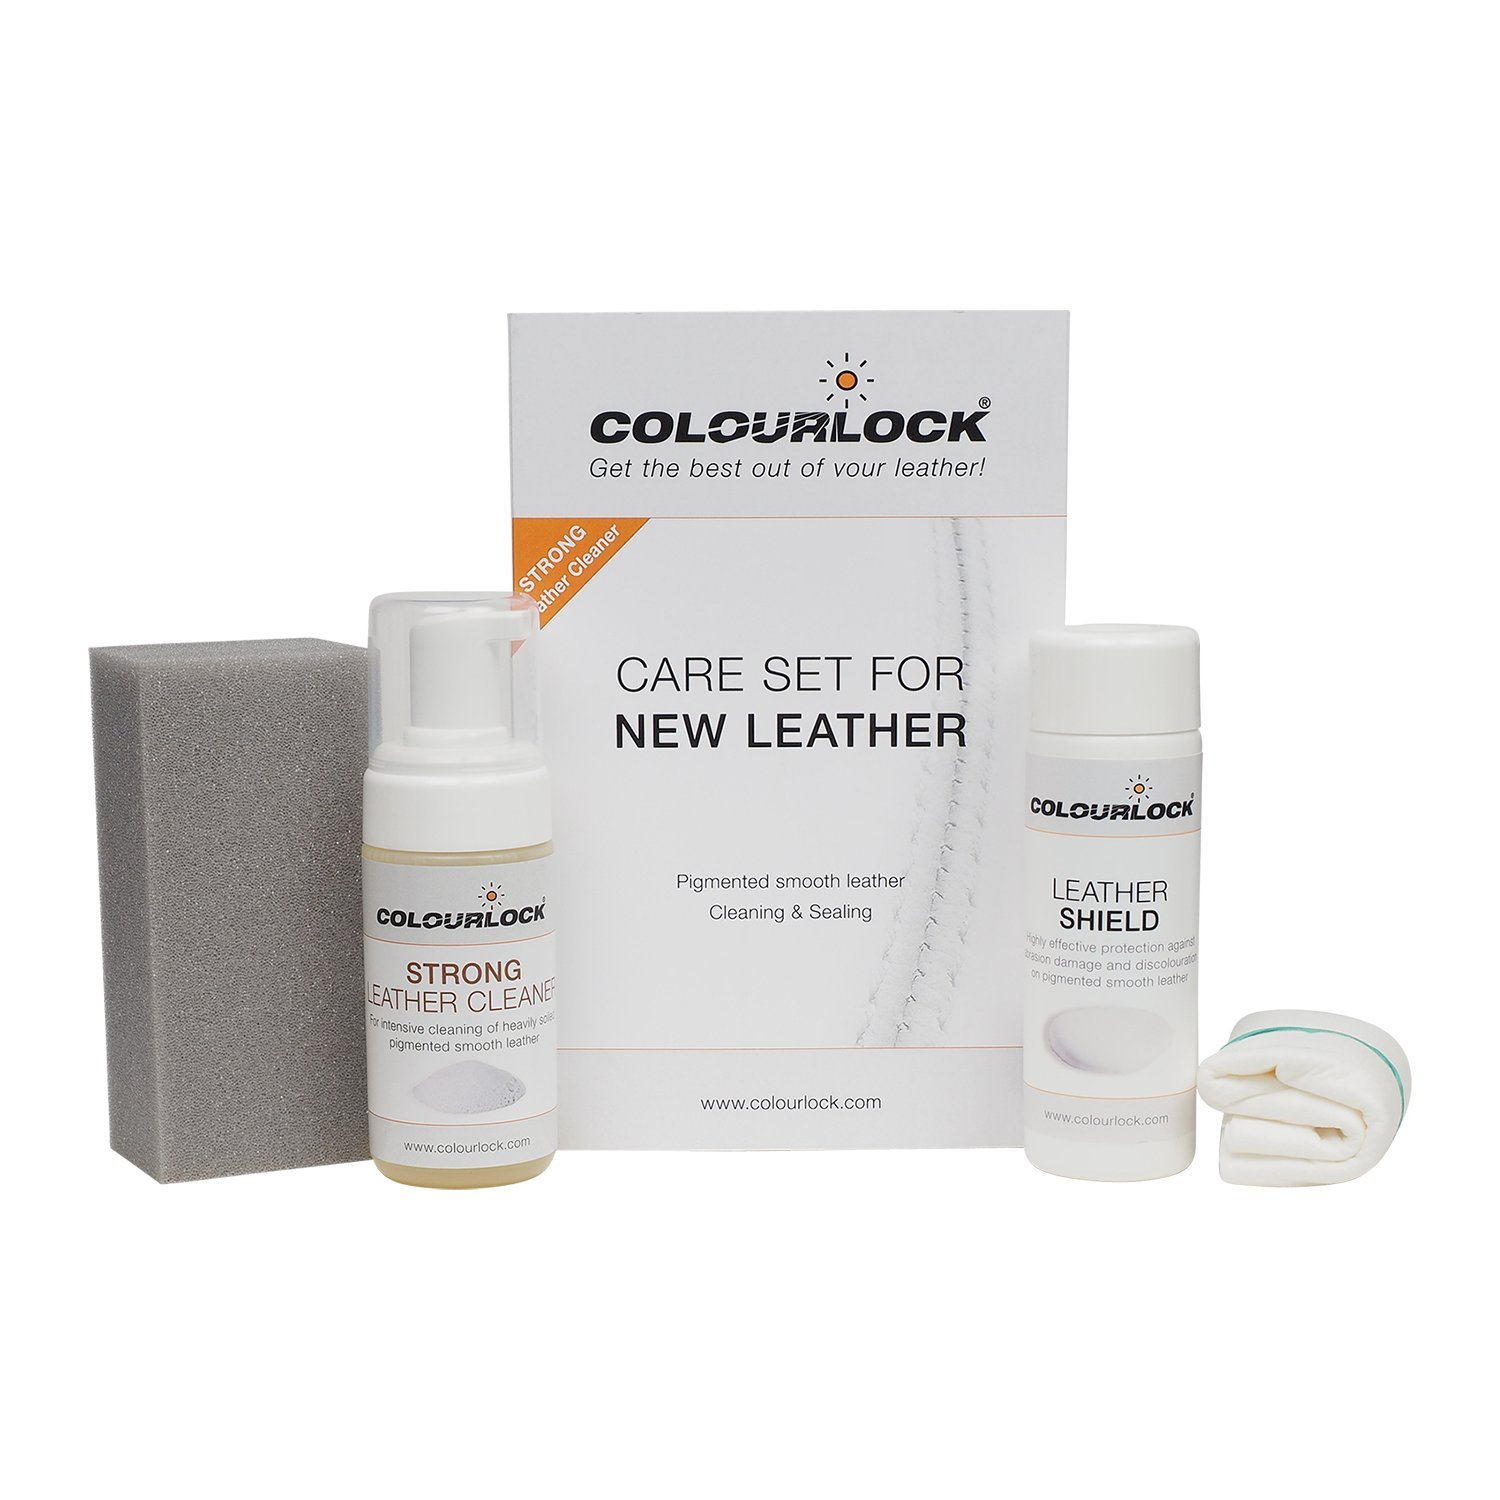 Colourlock Leather Shield Kit - Strong Cleaner & Leather Shield for Cleaning and Protection Against dye transfers on Furniture, Jackets, Handbags & Protection Against Scuffs on car Seats (Regular) by Colourlock (Image #1)